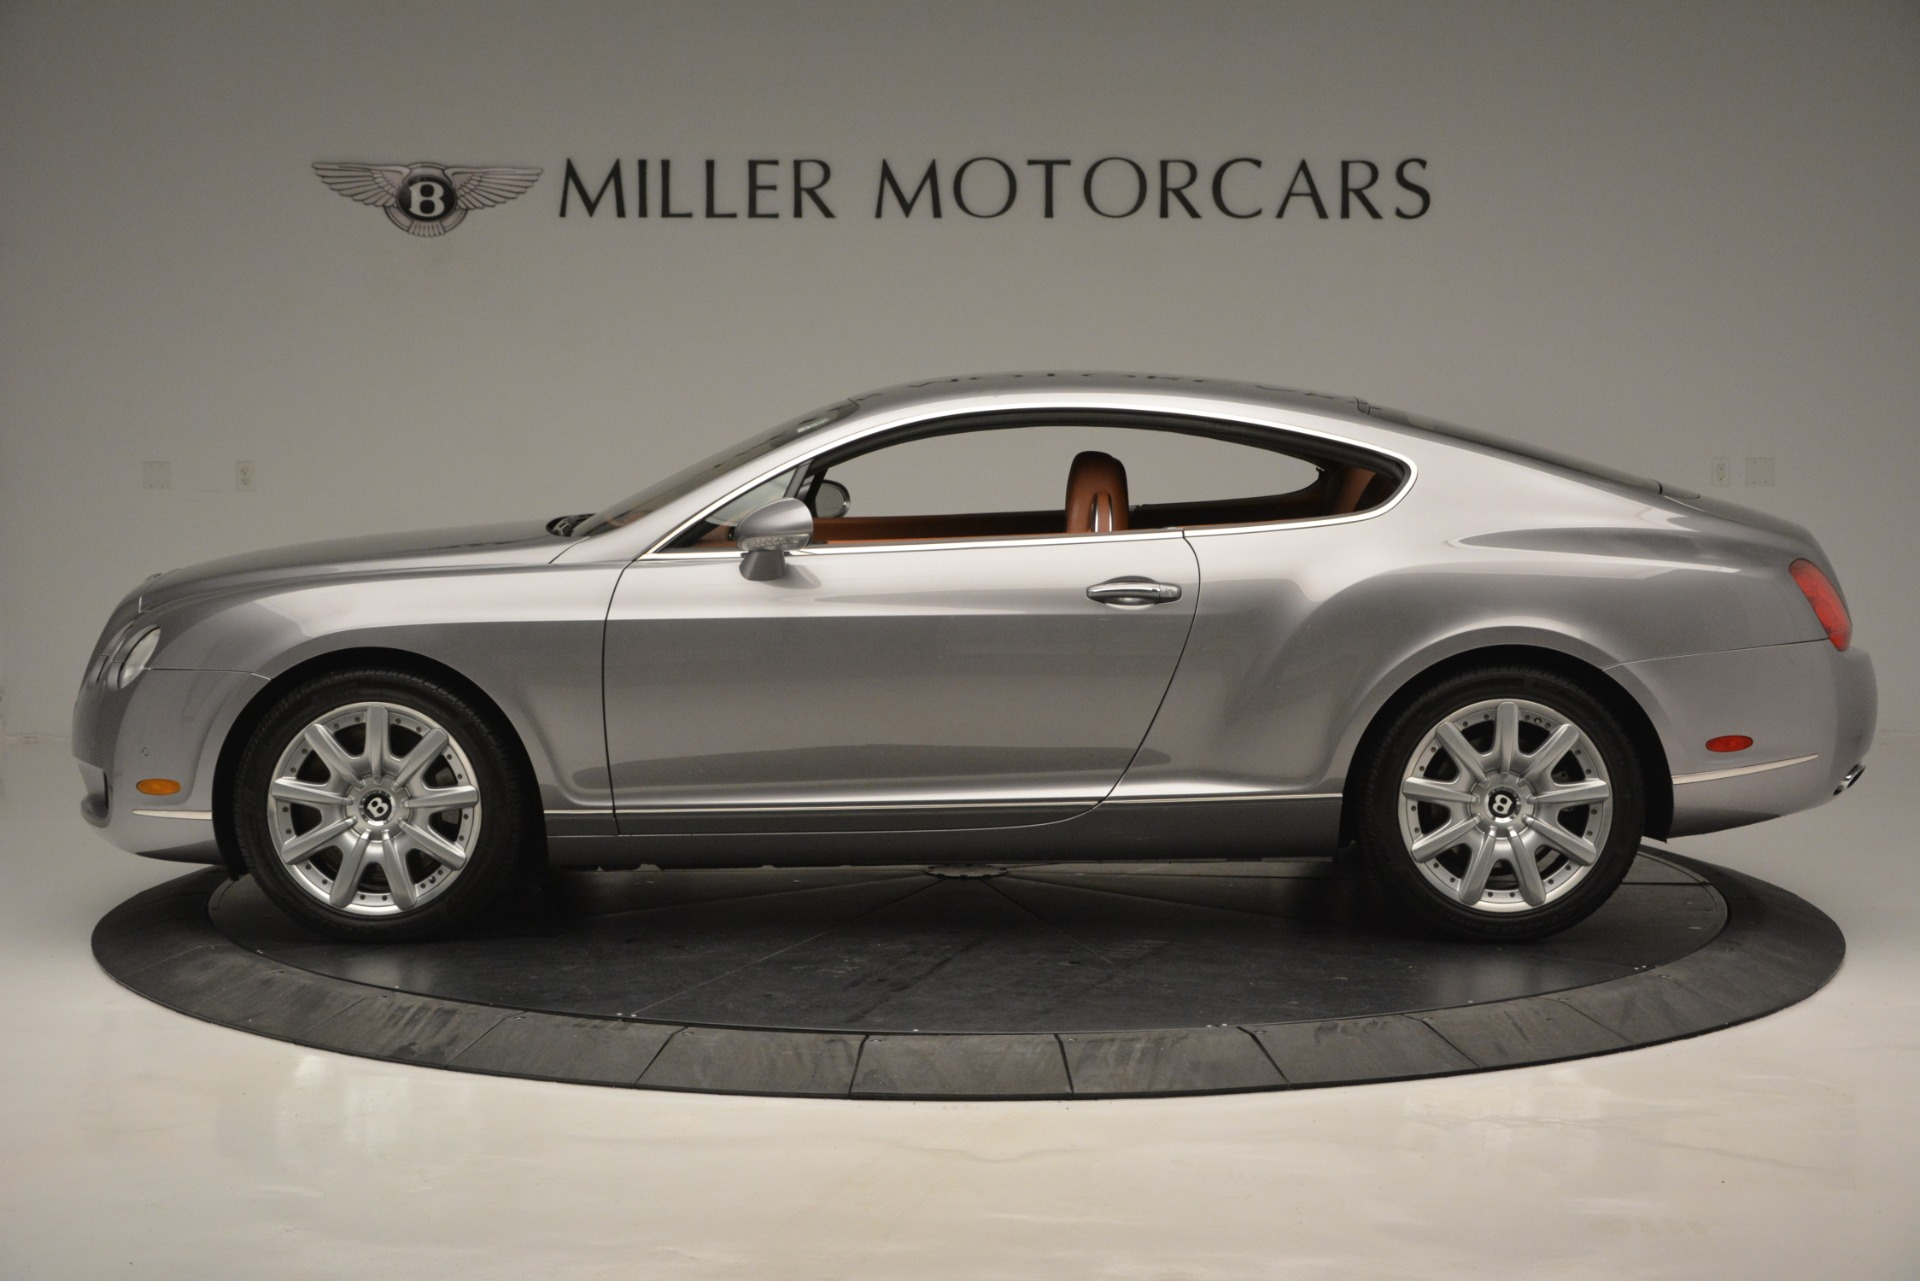 Used 2005 Bentley Continental GT GT Turbo For Sale In Westport, CT 2726_p3